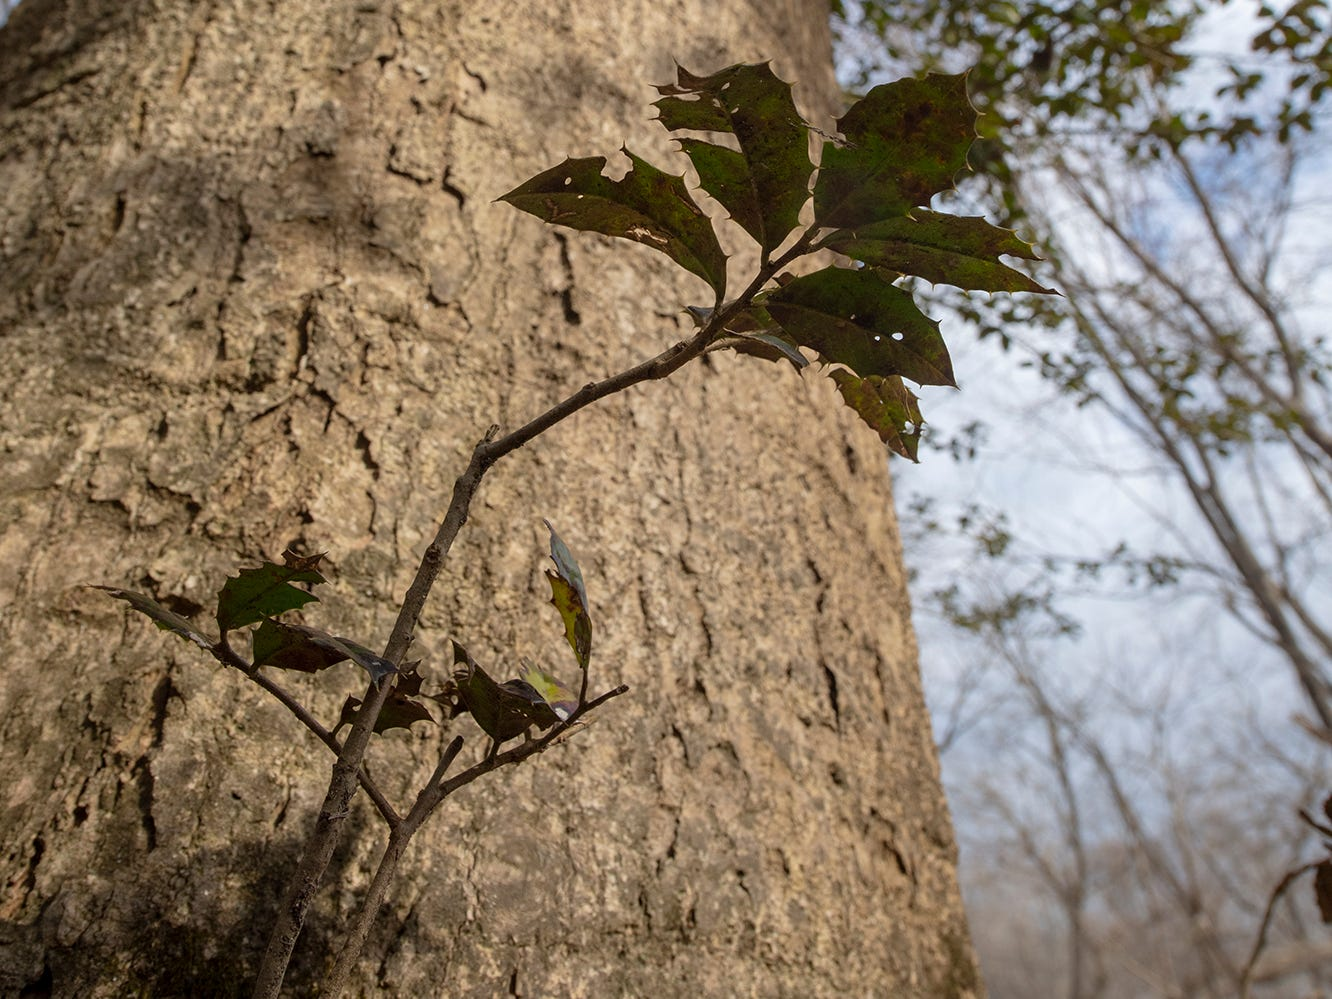 A new shoot pushes out of the base of the the American holly tree. The tree, believed to be 350 years old, is part of the Indian Steps Museum along the Susquehanna River in Lower Chanceford Township.